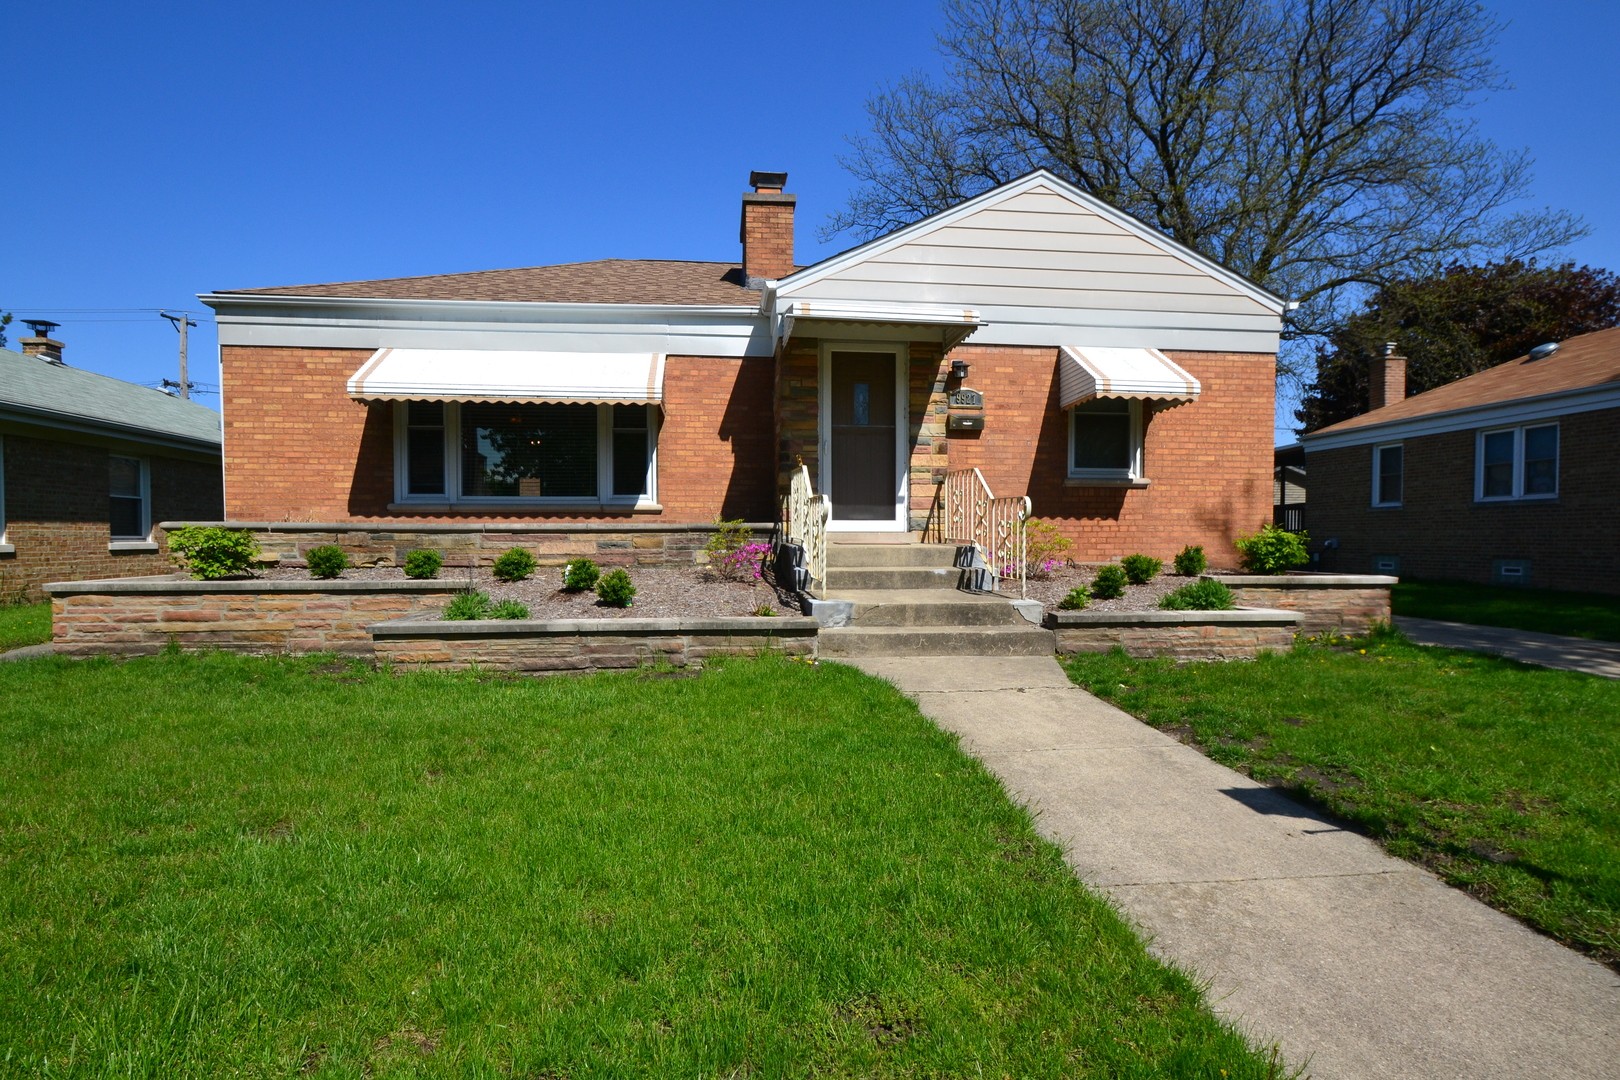 Photo of 9927 Sawyer Avenue Evergreen Park IL 60805